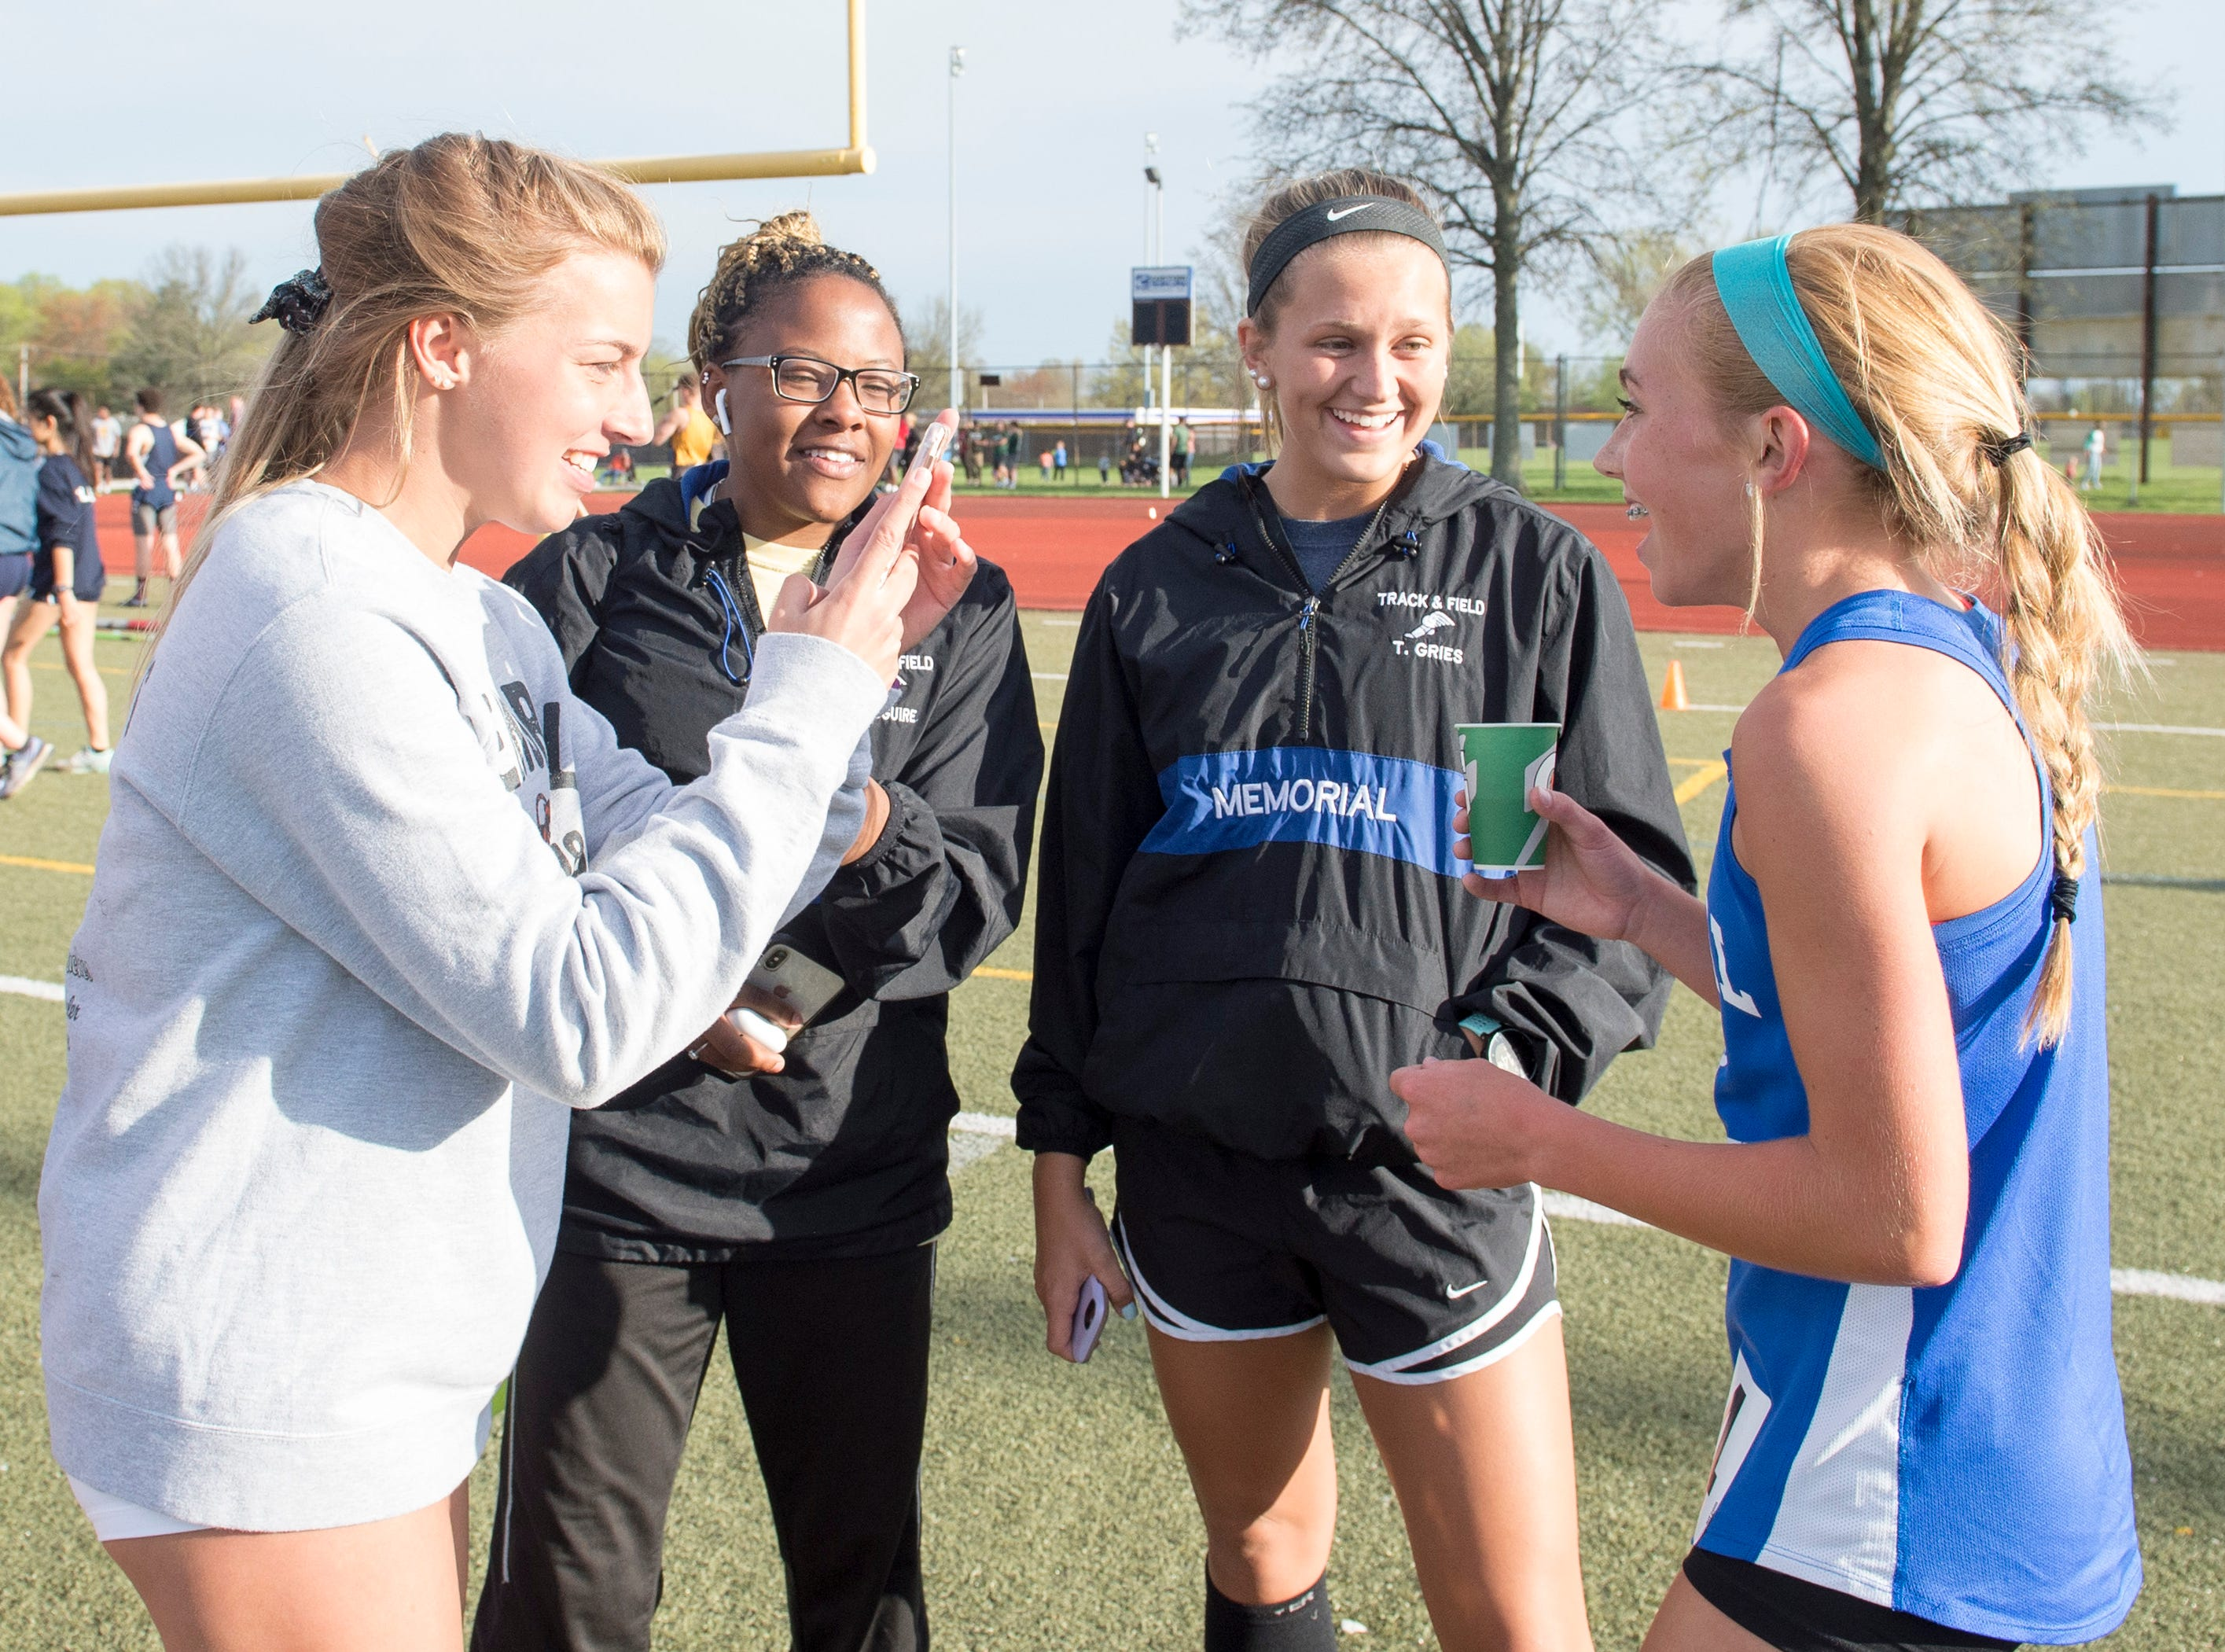 Memorial's Jacqueline Brasseale, far right, celebrates with teammates during the 2019 City Track and Field meet at Central high School Friday, April 12, 2019. Brasseale placed first in the event at five minutes and 18.21 seconds